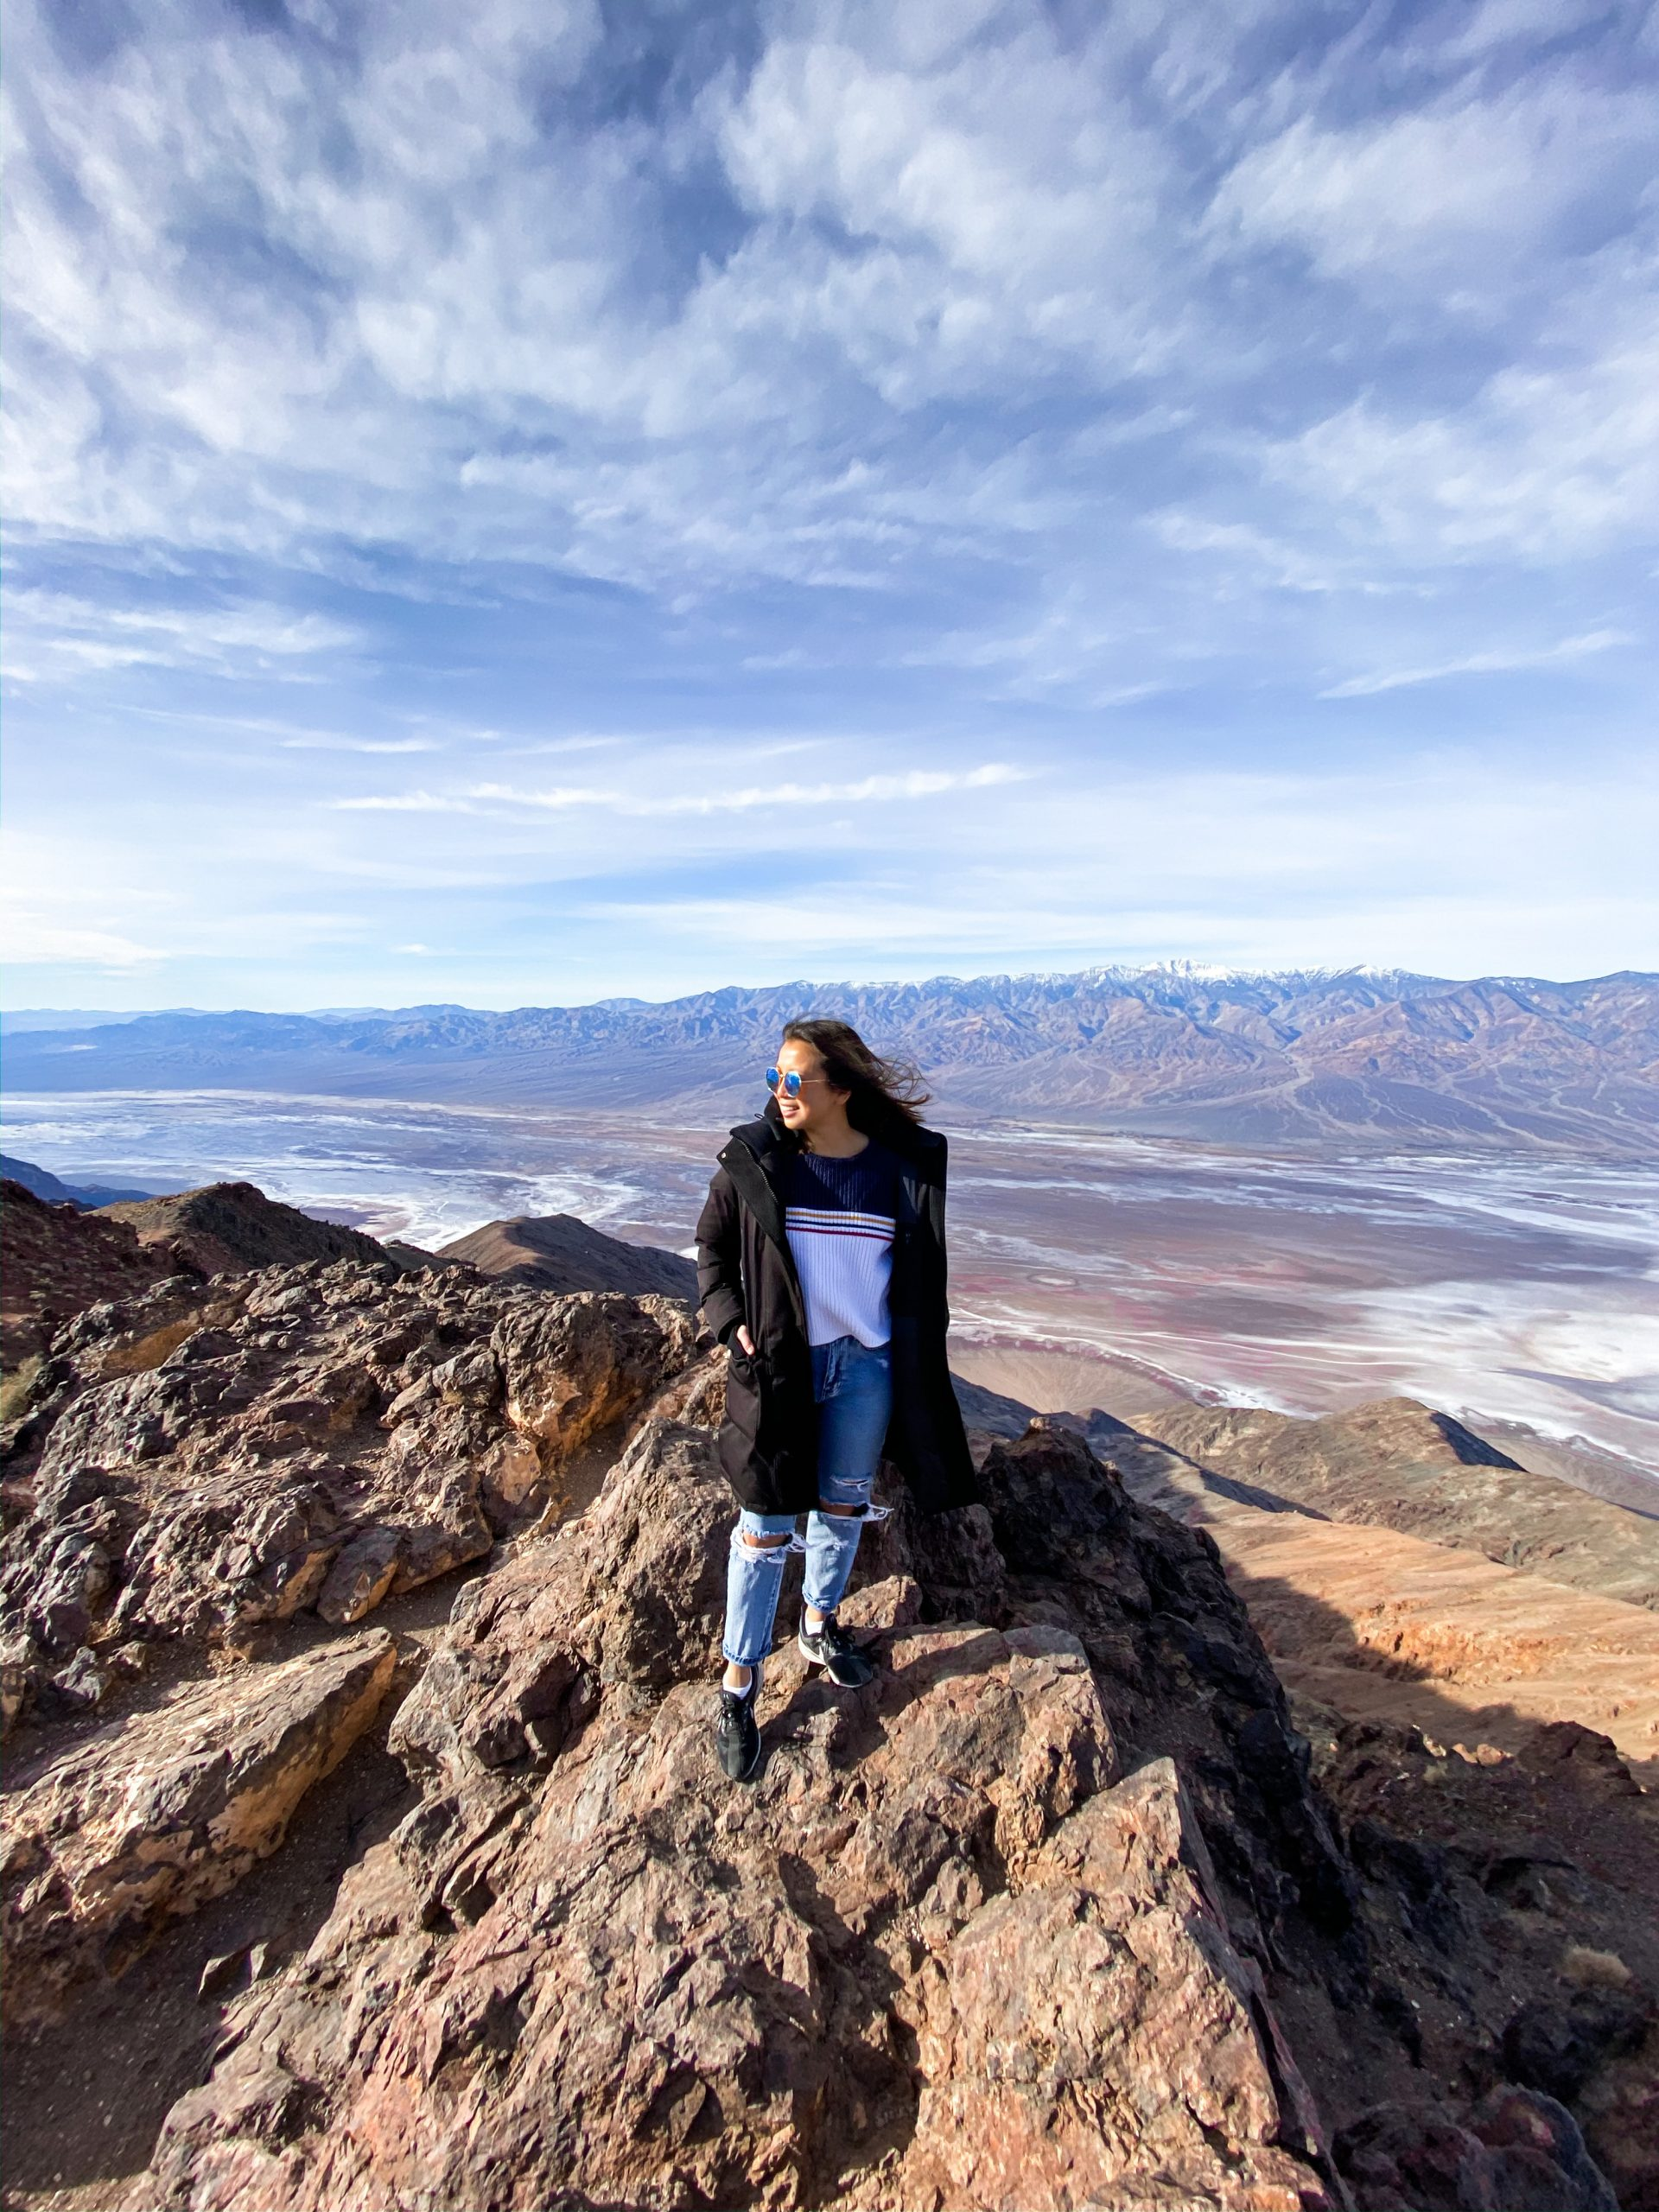 Dante's View - Death Valley National Park